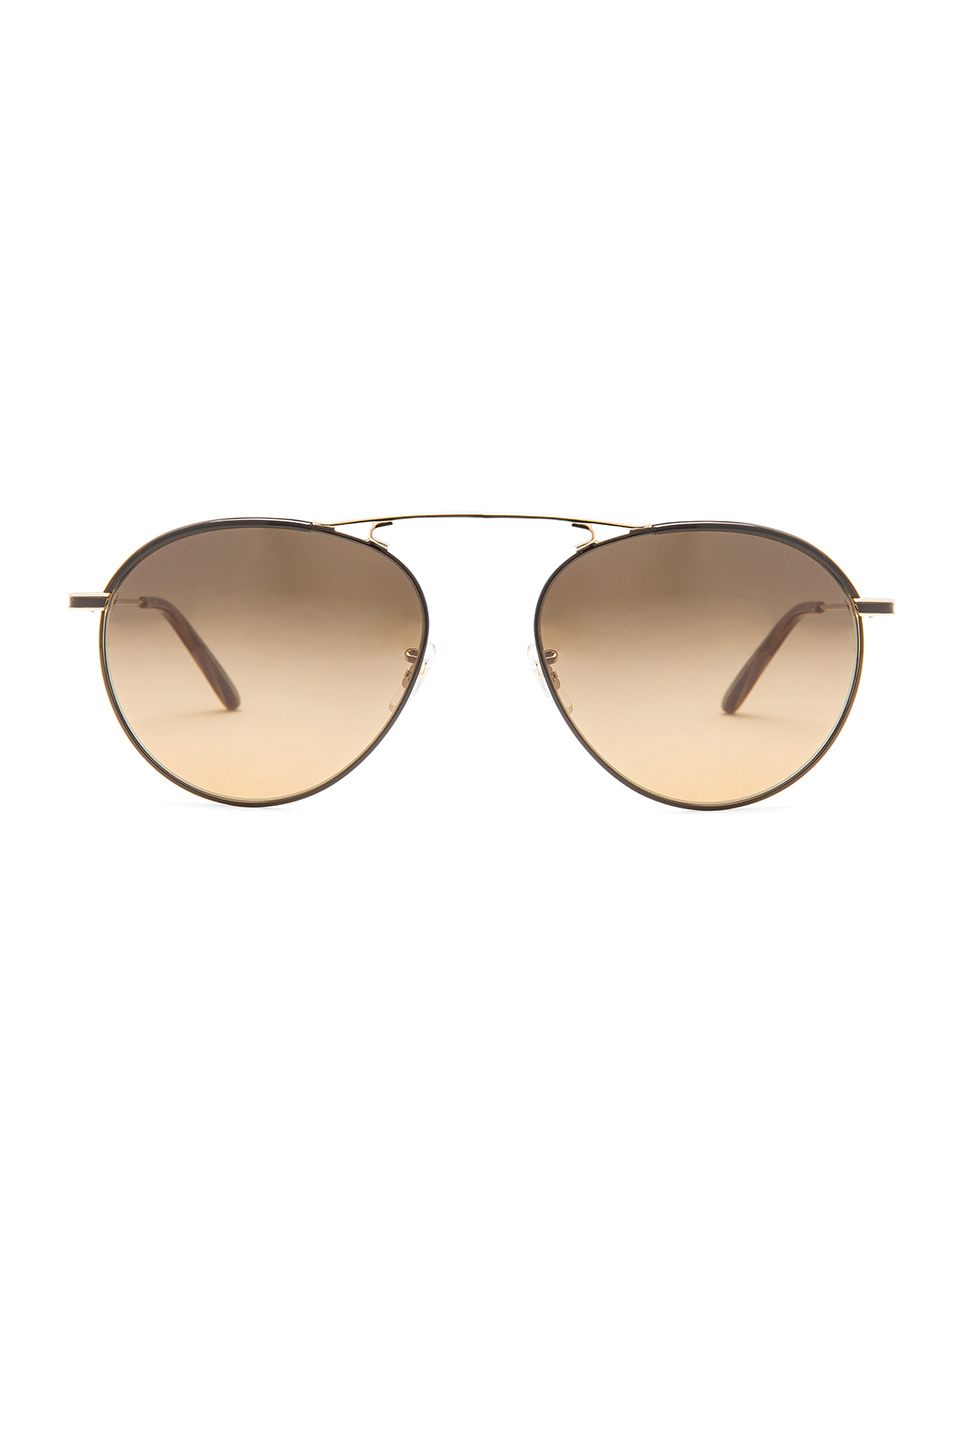 Garrett Leight Innes Sunglasses in Metallics